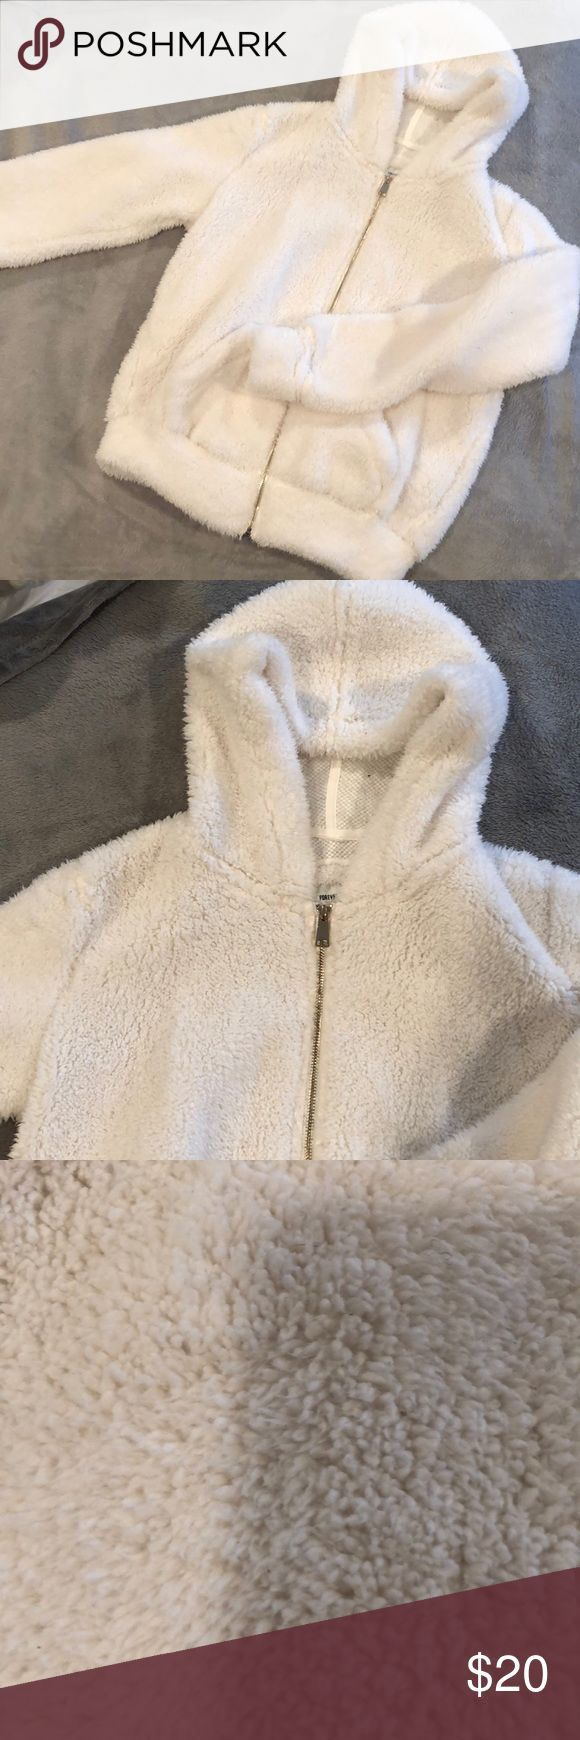 Fuzzy furry zip up hoodie Super cute fuzzy furry white zip up. Only washed and worn once. Forever 21 Tops Sweatshirts & Hoodies